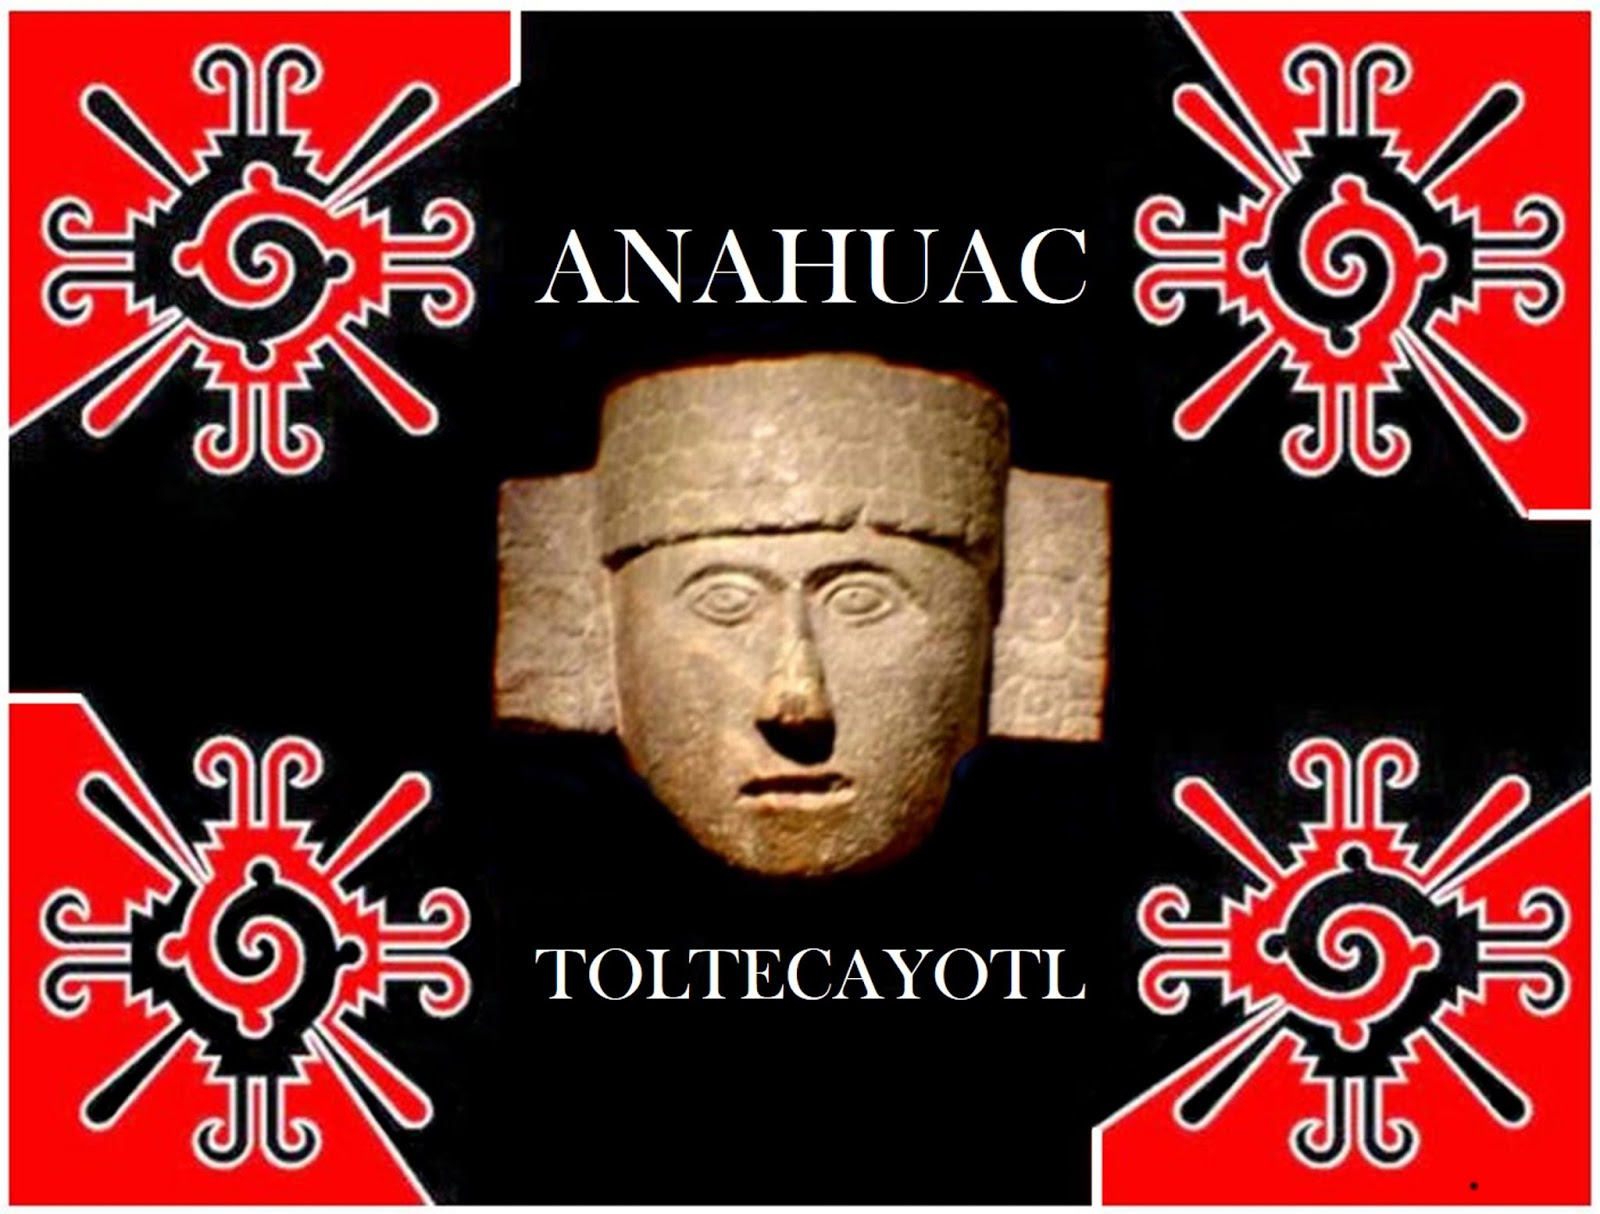 Toltecs of anahuac